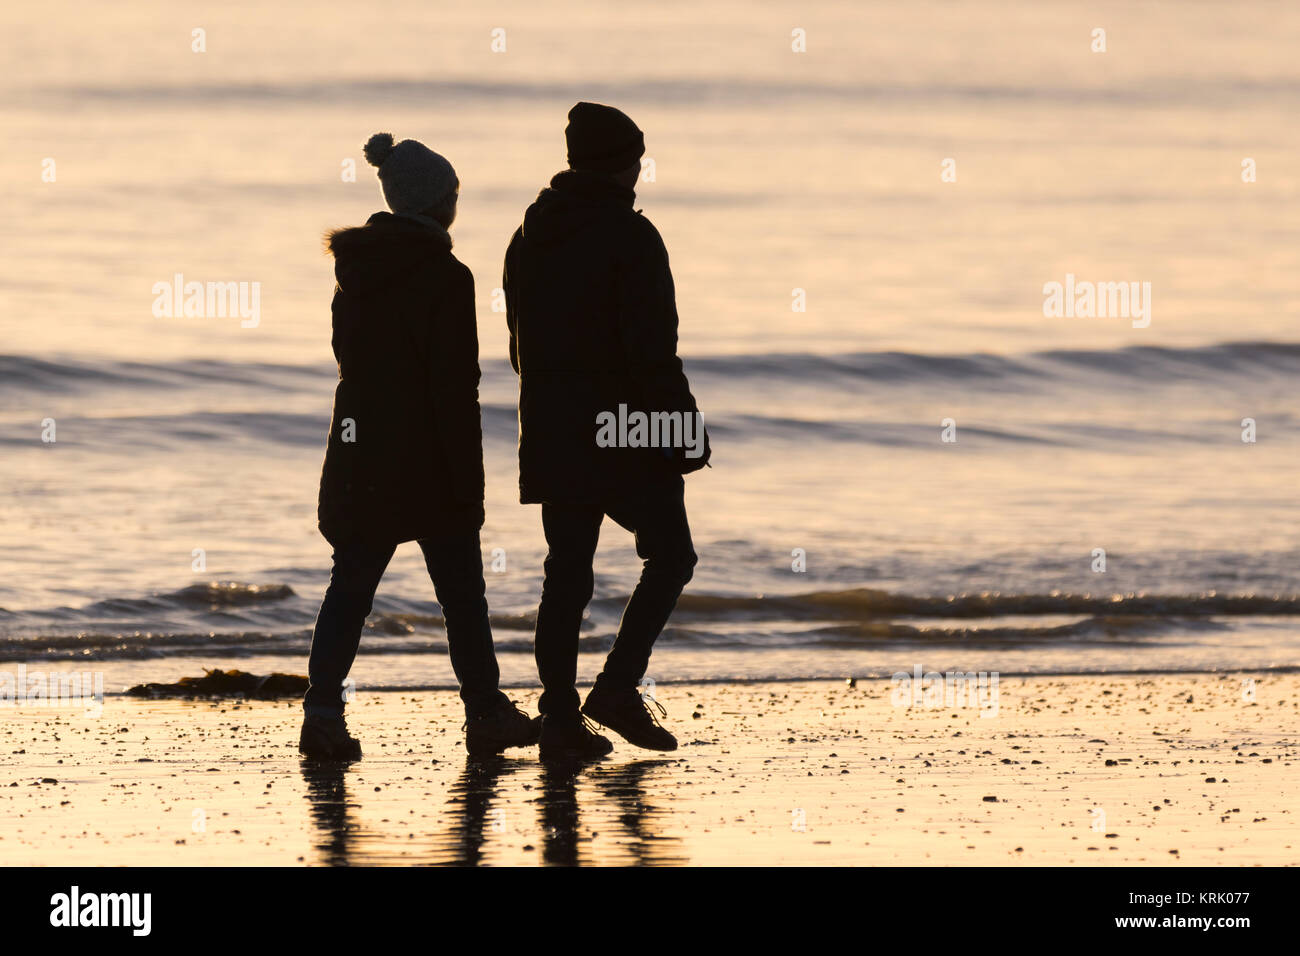 Silhouette of a couple taking a stroll by the sea in evening light. - Stock Image